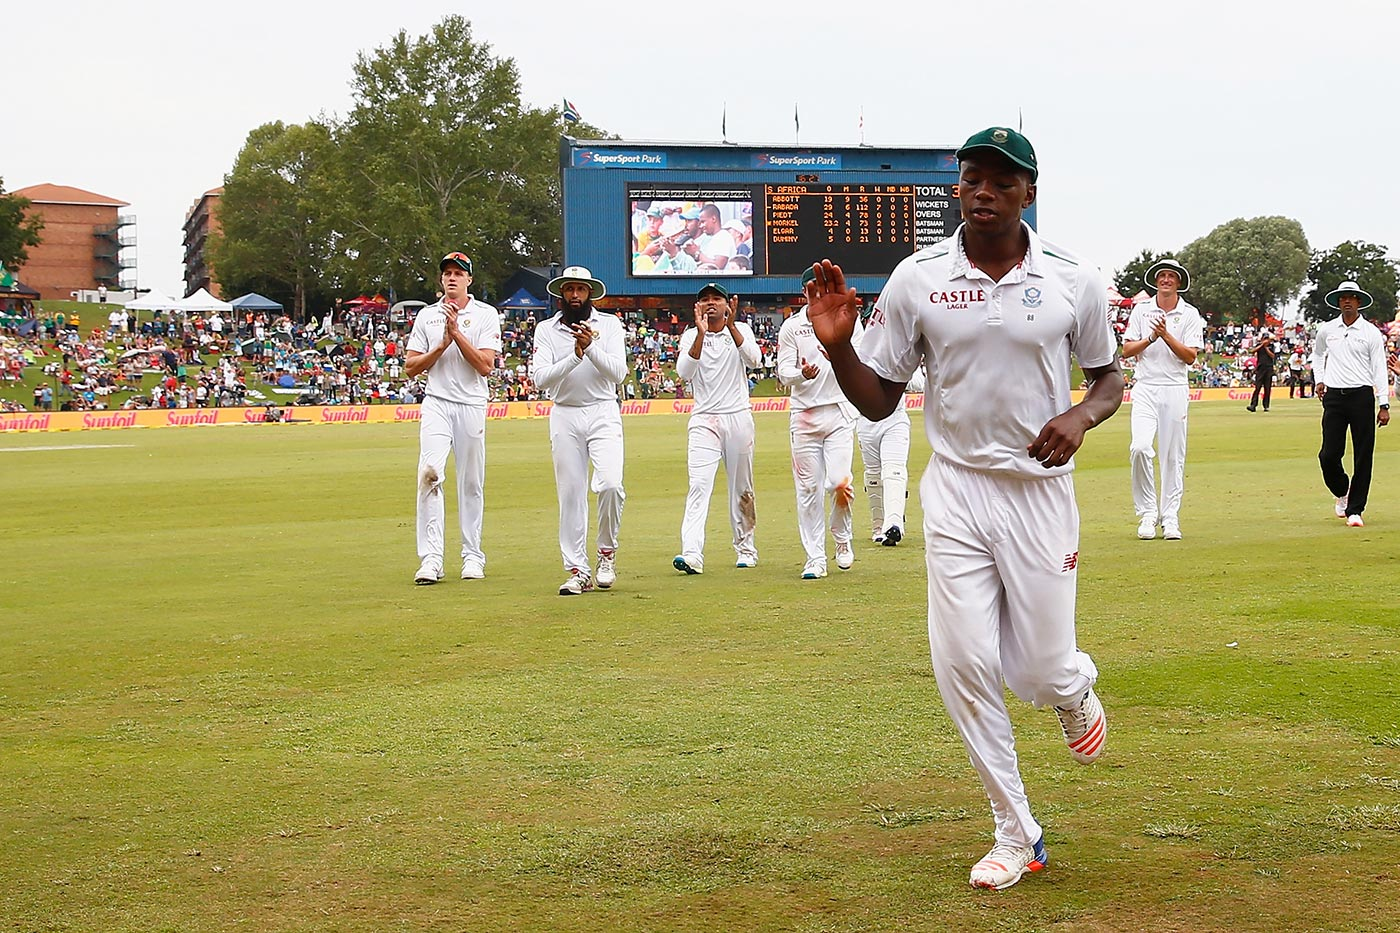 Nearly Ntini: Rabada took 13 for 144 against England in Centurion in 2016, just a few runs short of being South Africa's best Test match bowling performance of all time